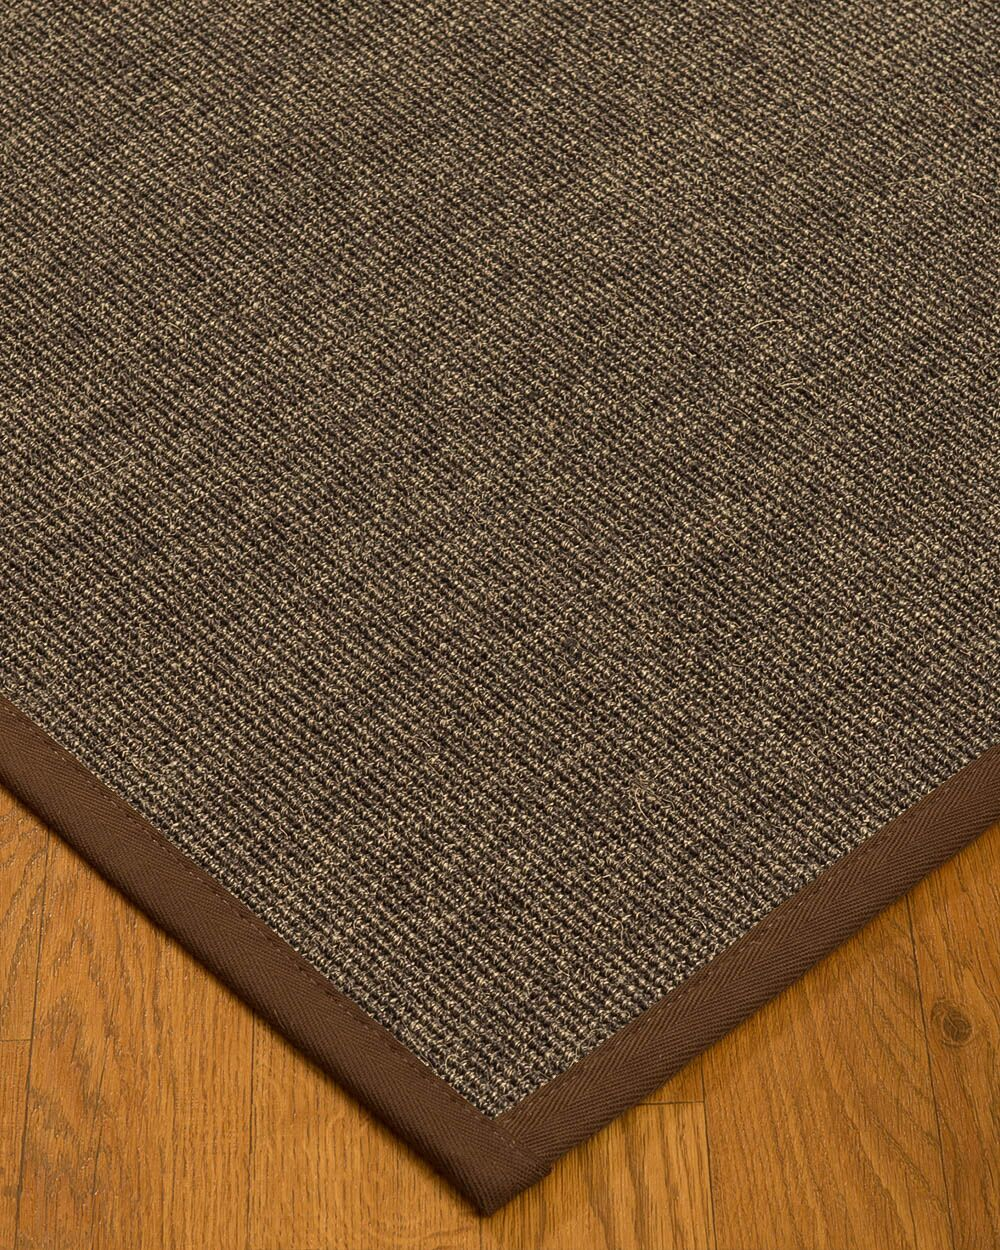 Bafford Hand-Woven Black Area Rug Rug Size: Rectangle 5' x 8'